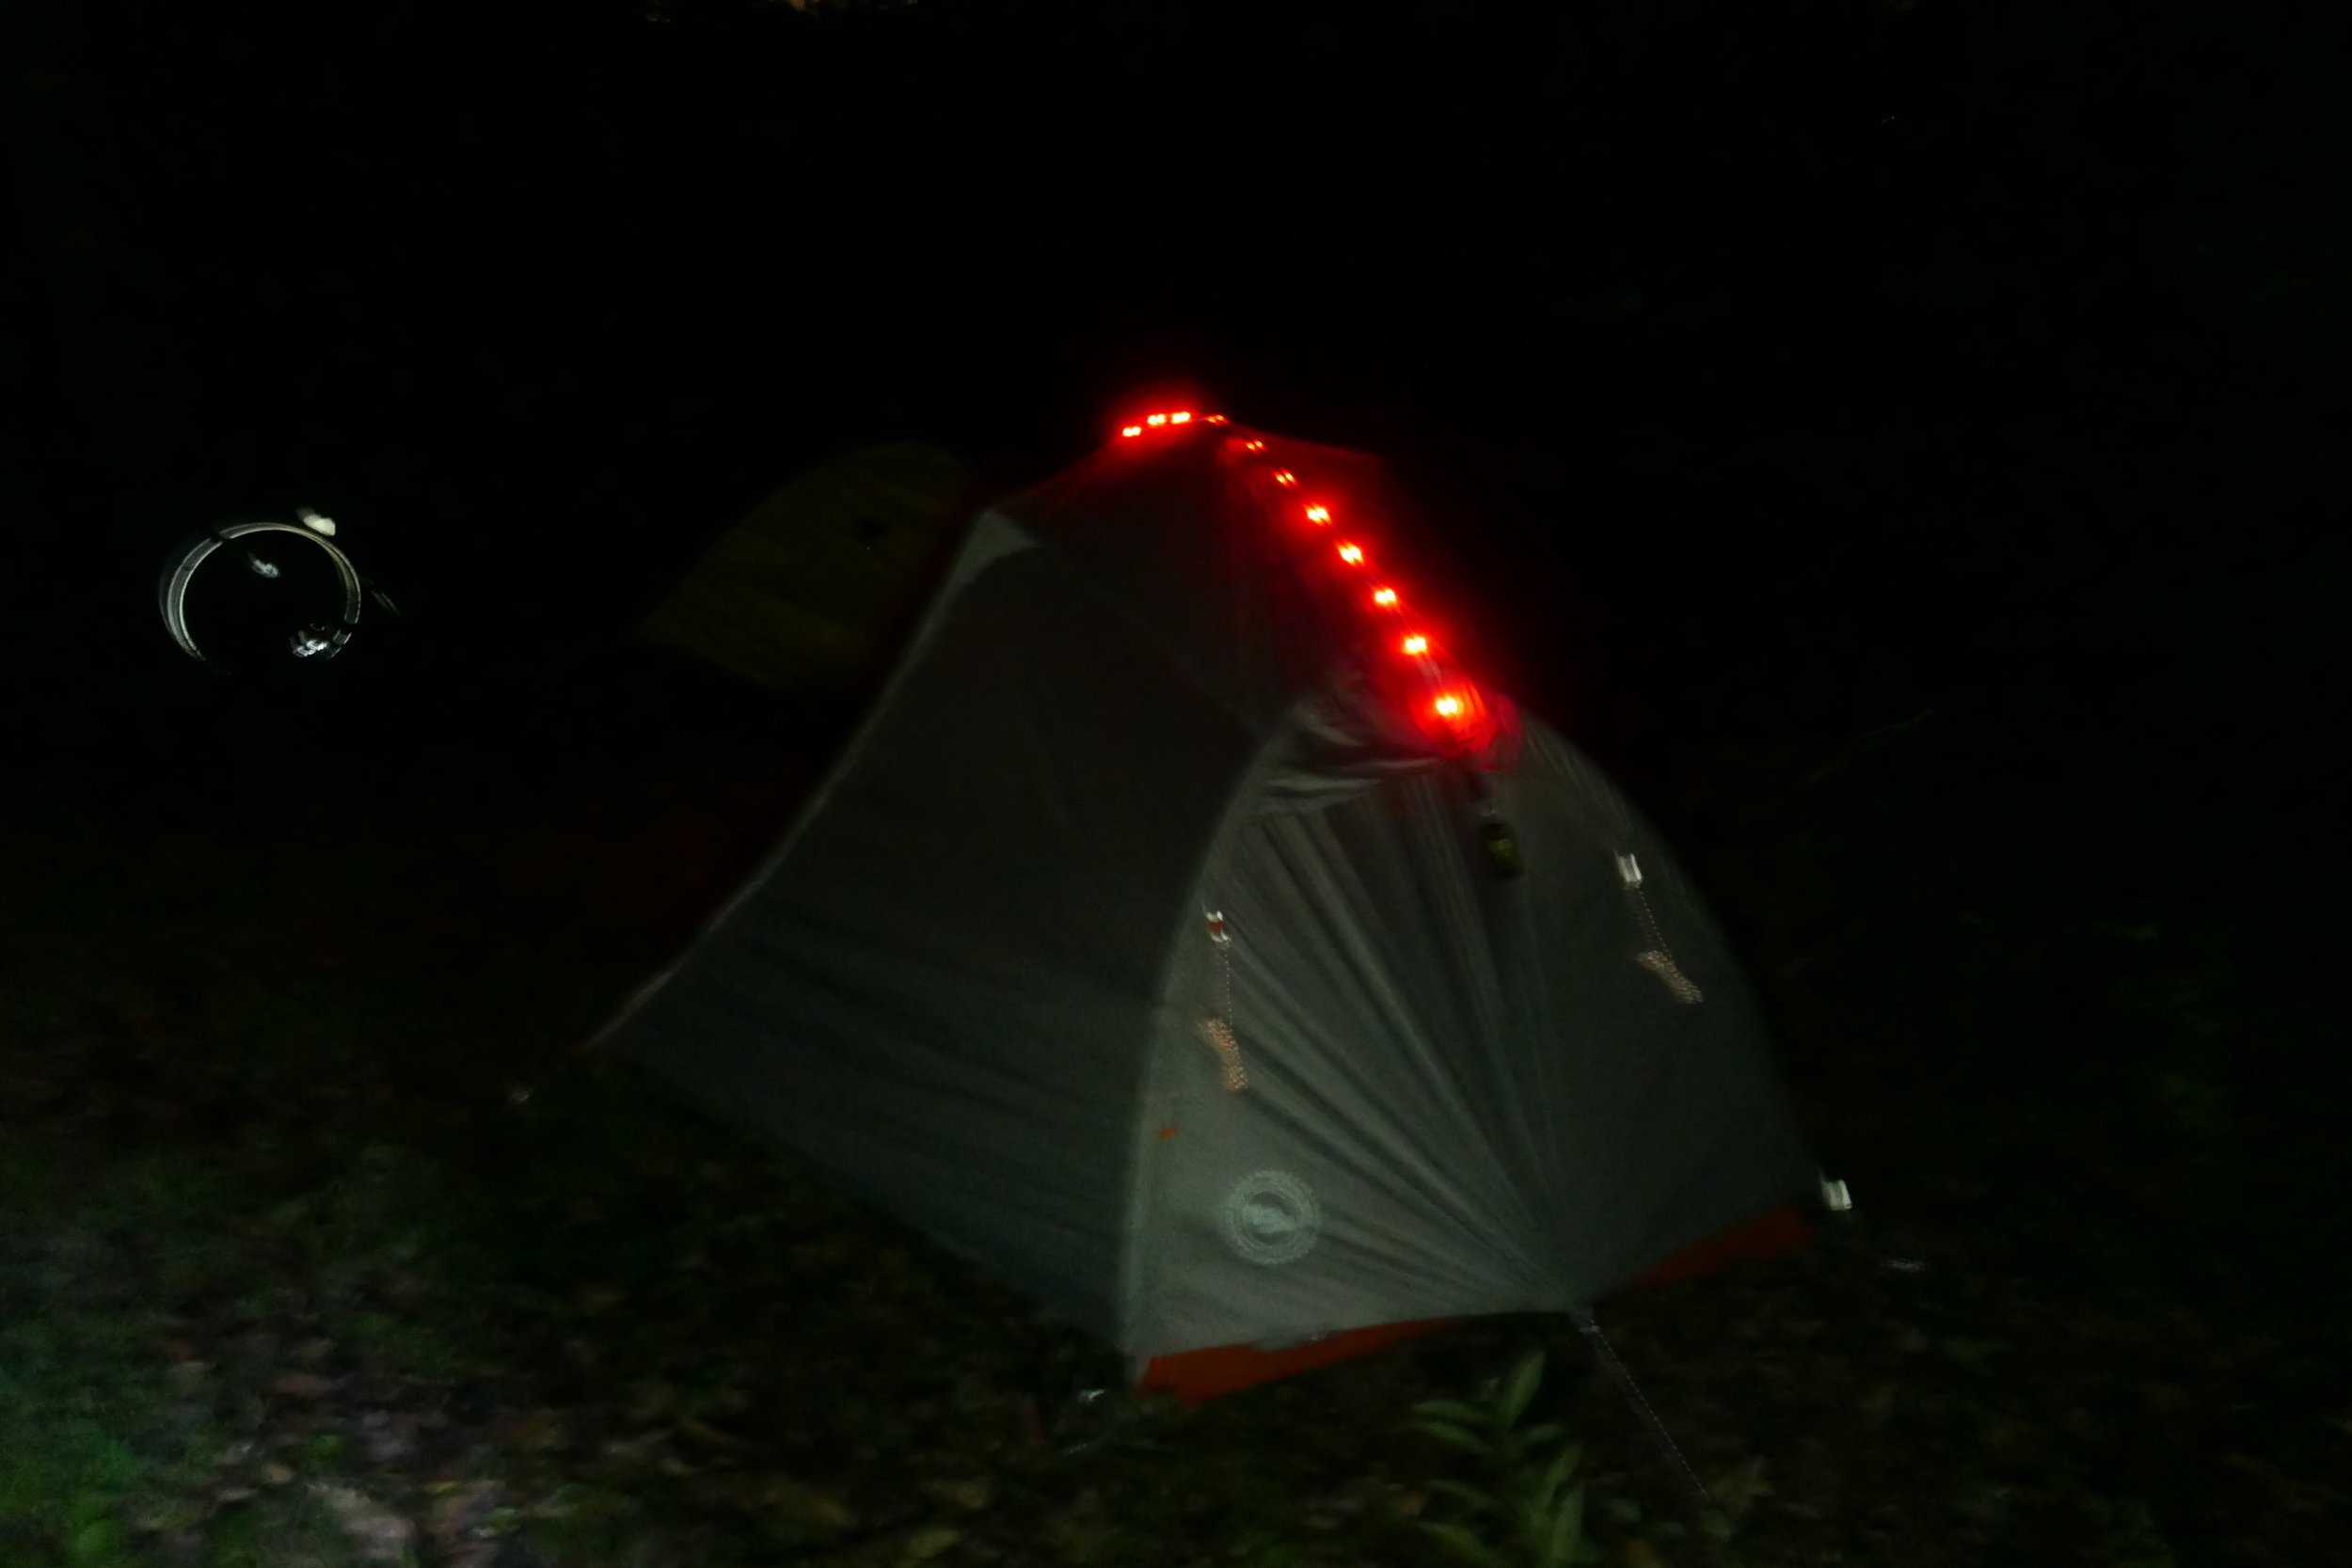 I put these Big Agnes lights on my Big Agnes tent so that I can be found in the middle of the night to provide any assistance.